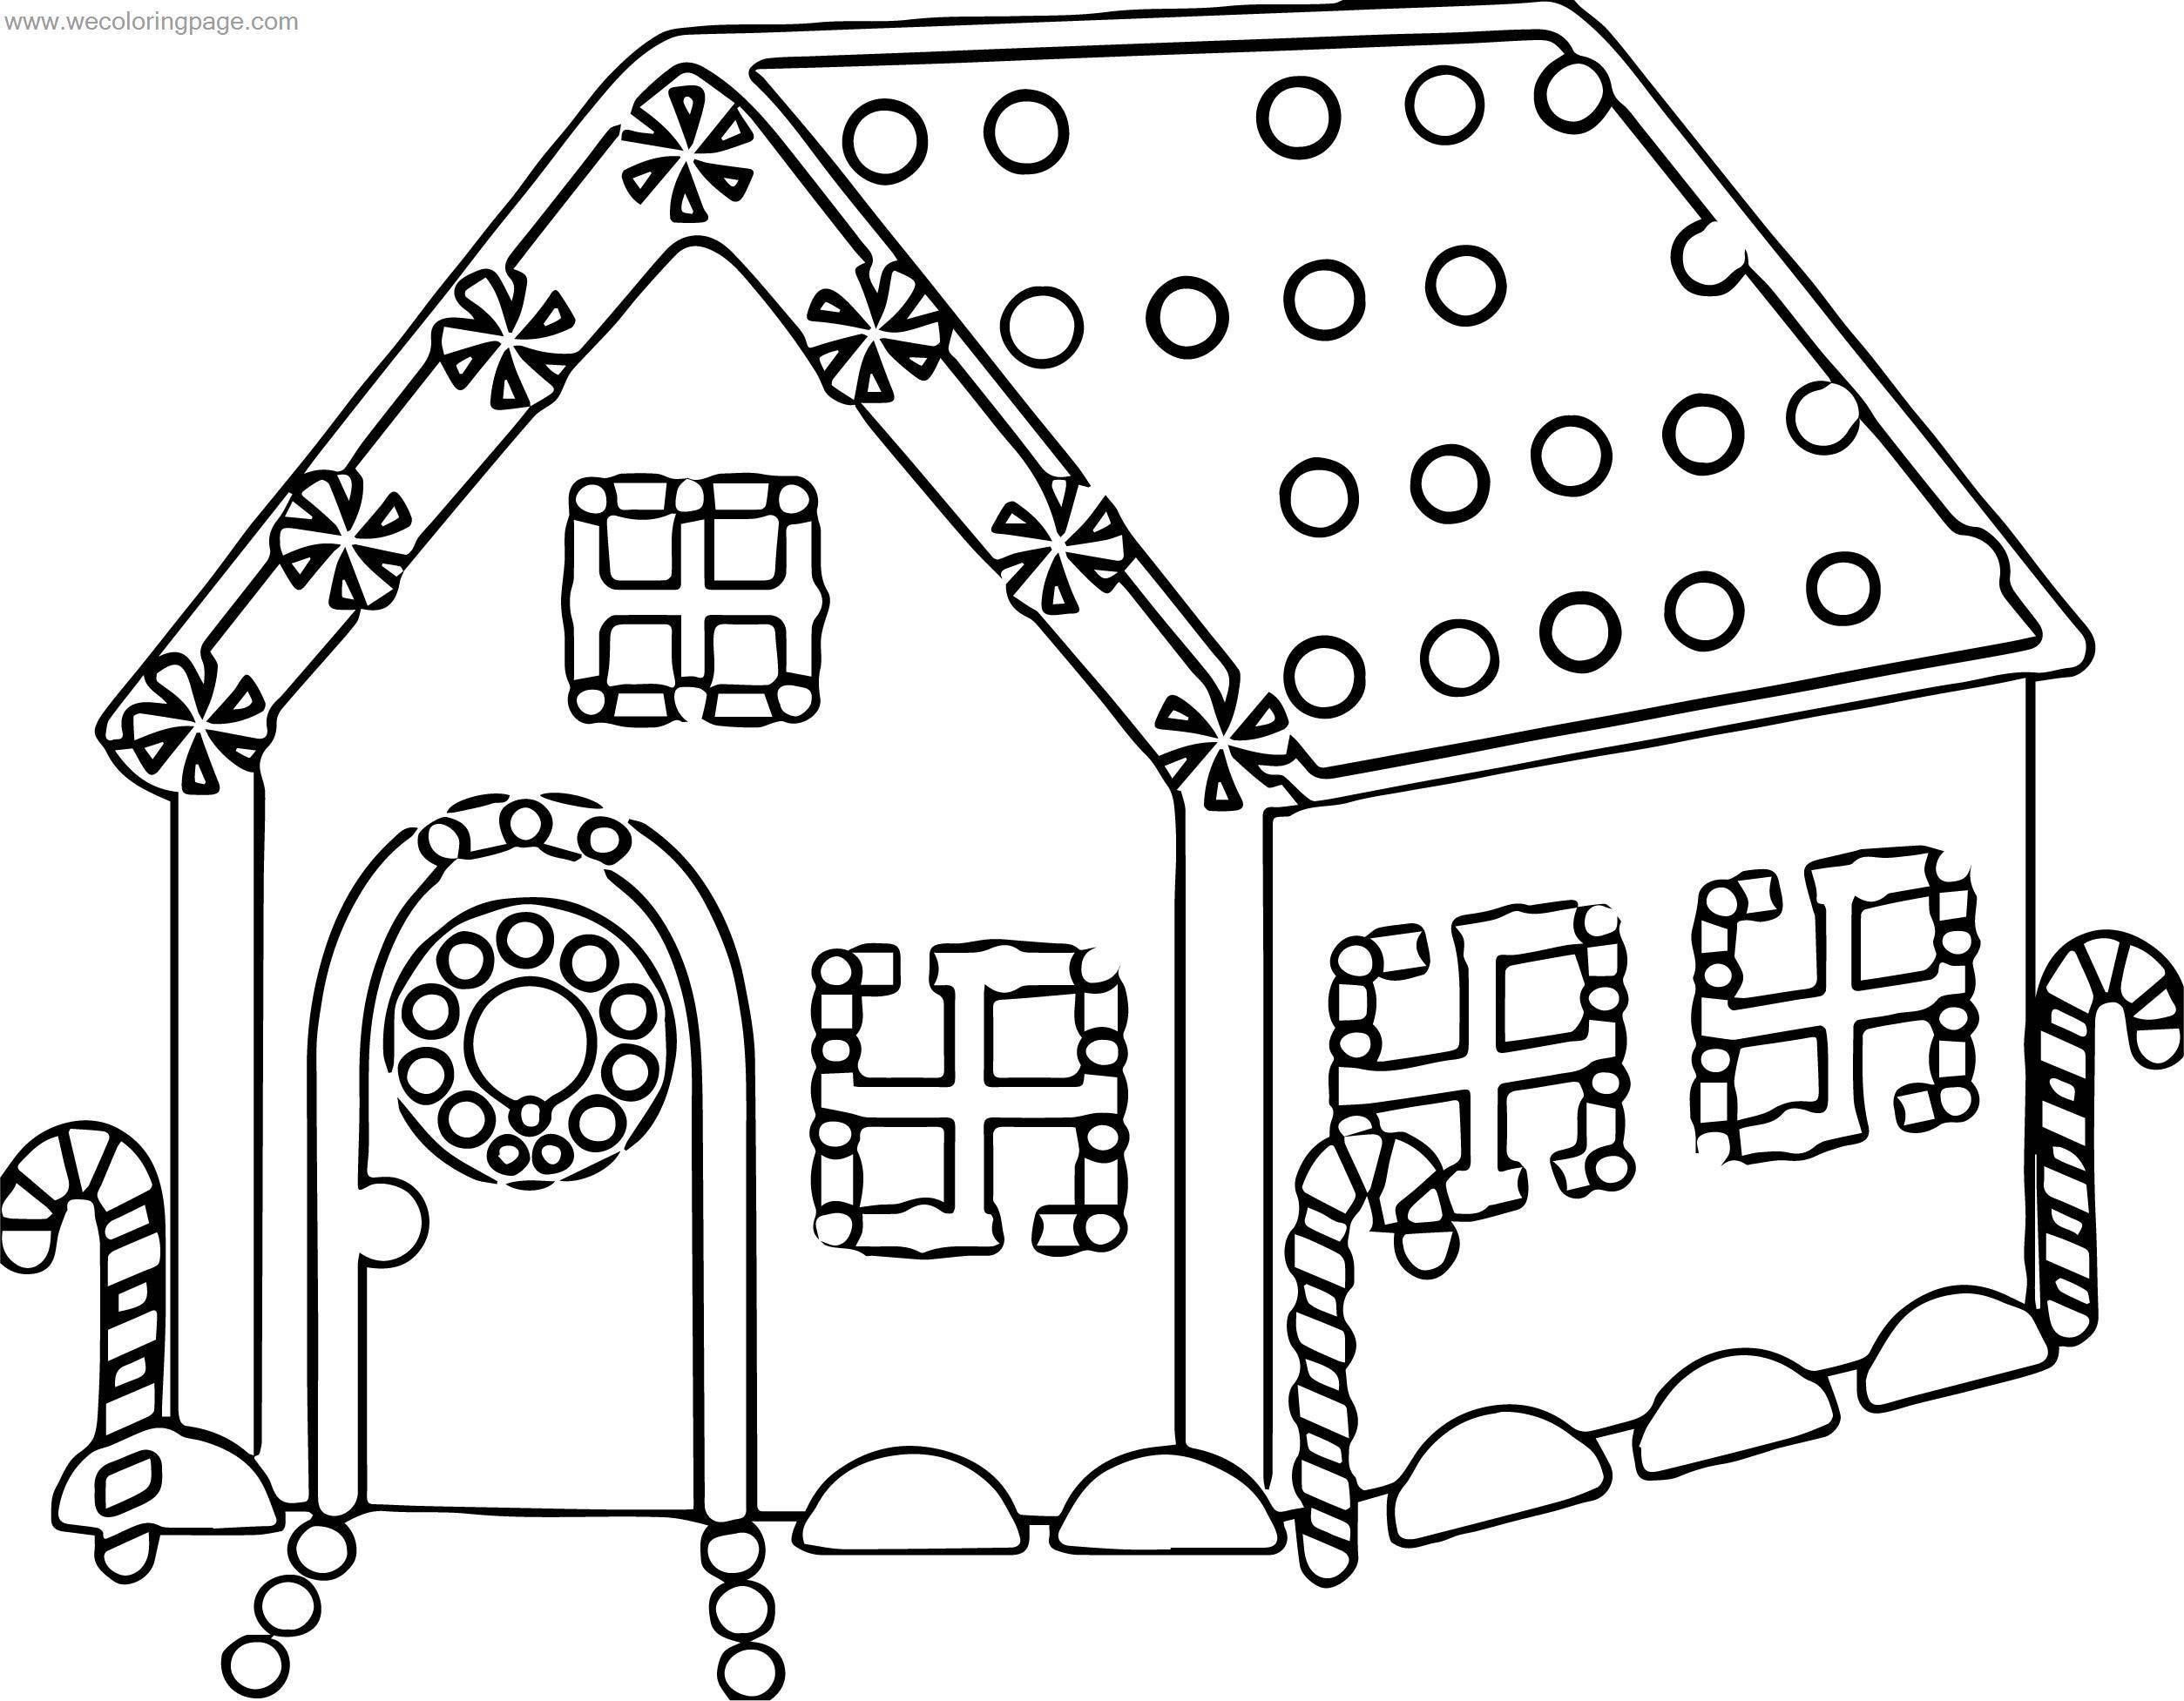 Cute House Gingerbread House Coloring Page ...